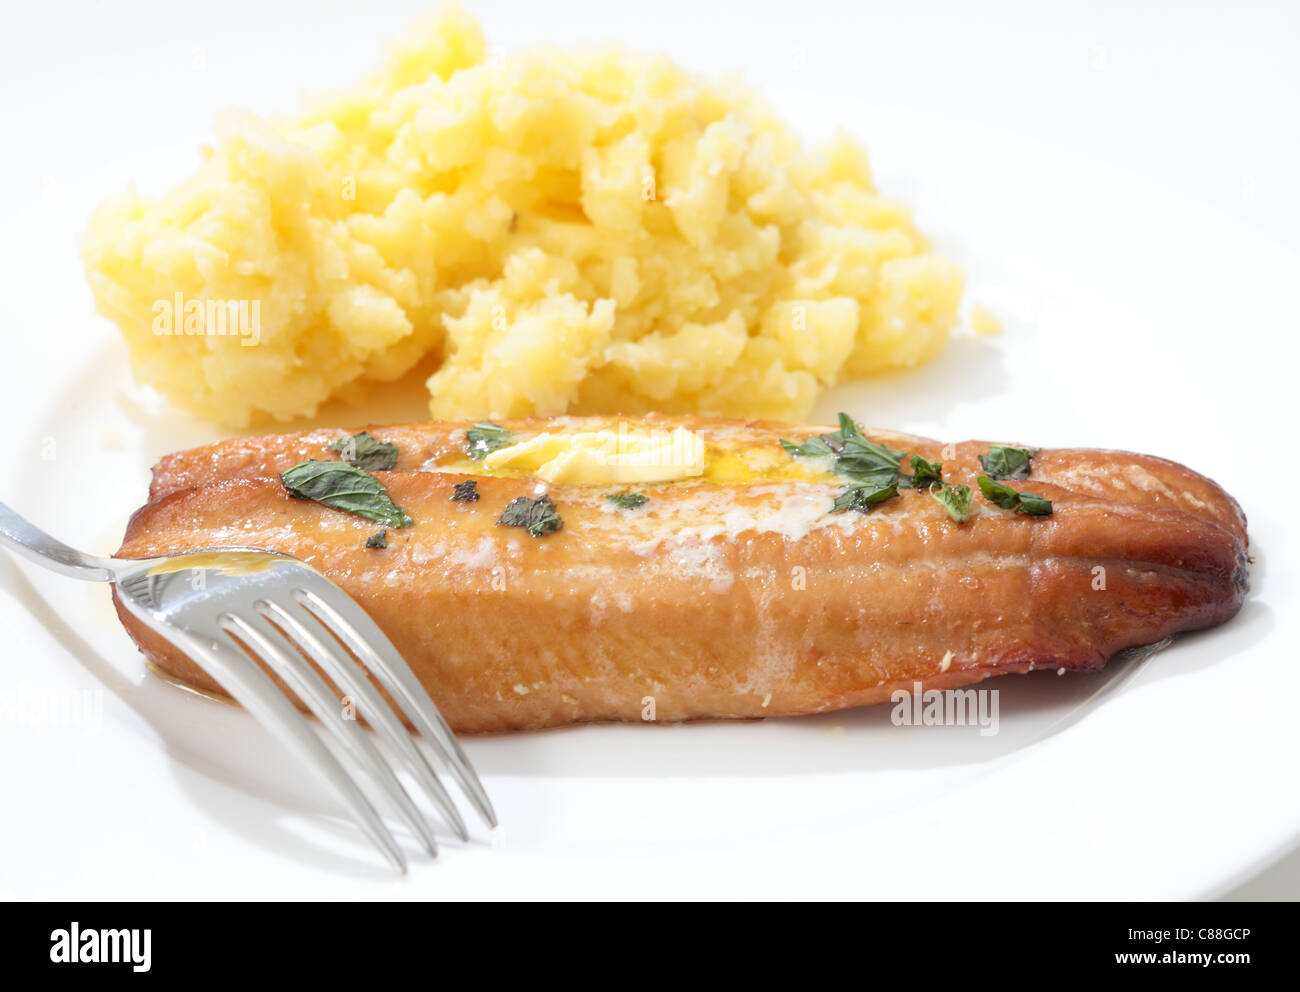 A grilled kipper garnished with herbs and a dab of butter, served with mashed boiled potatoes - Stock Image